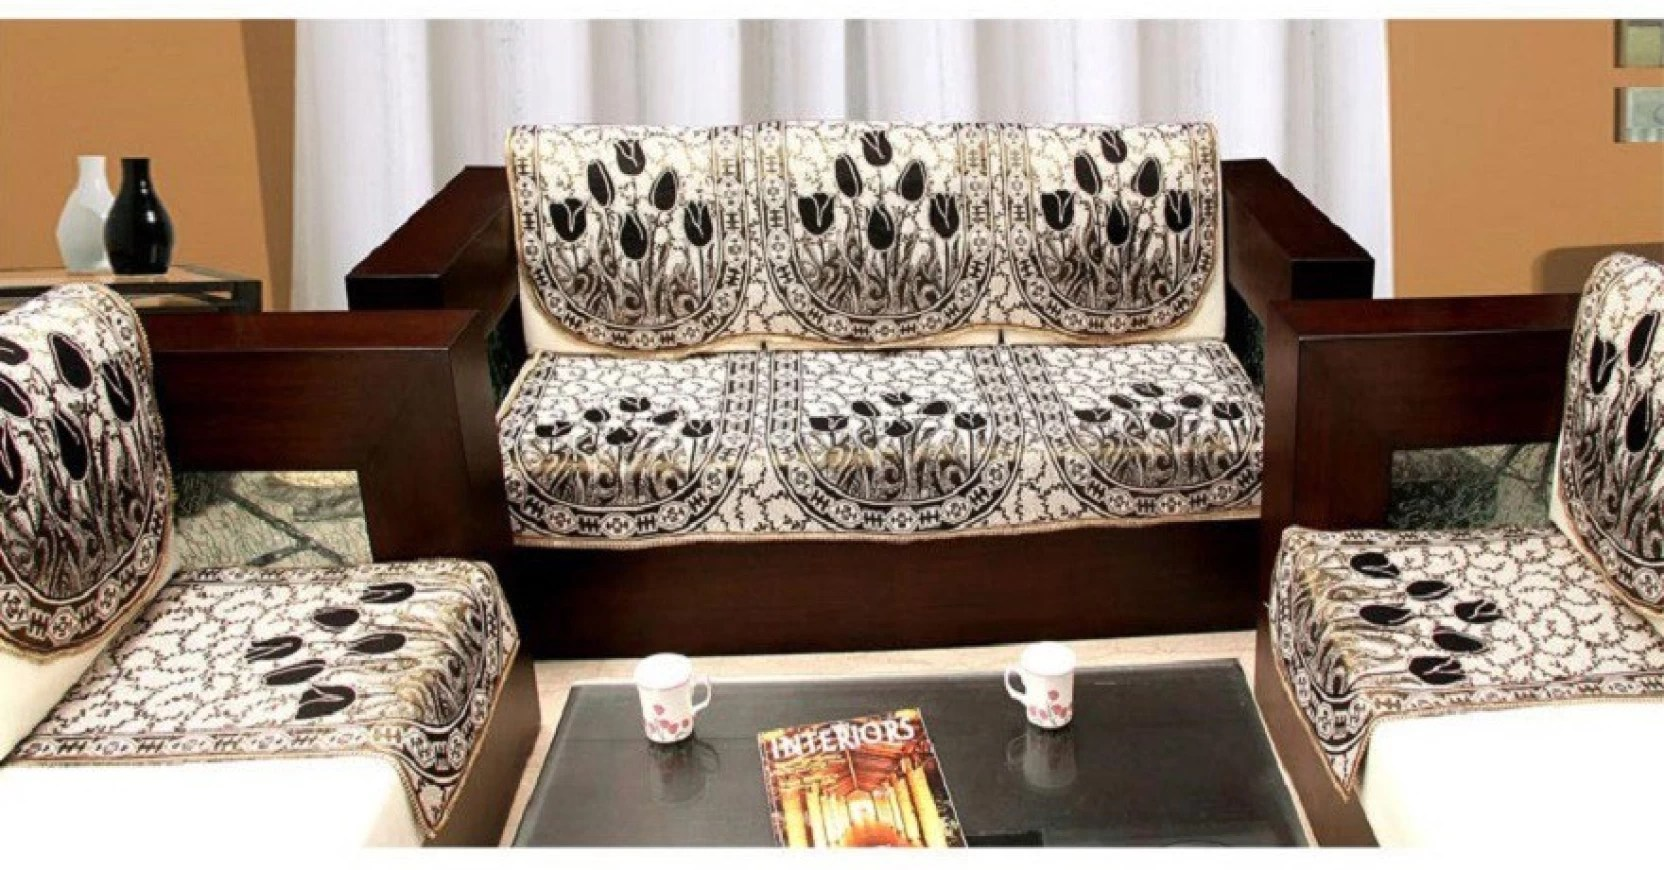 online sofa covers india how to repair a leather zesture jacquard cover price in buy